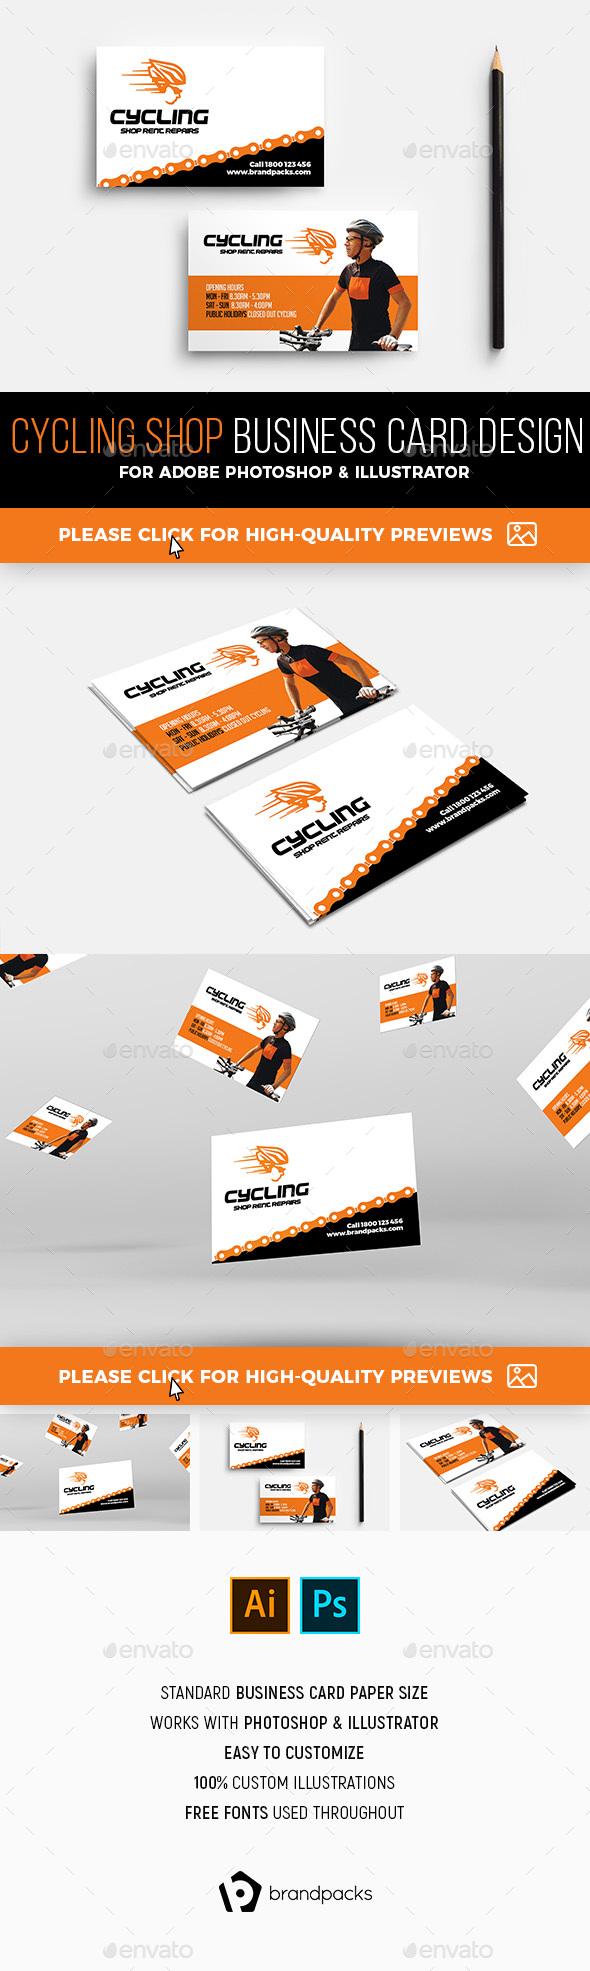 Business Card Templates Designs From GraphicRiver - Business card template designs